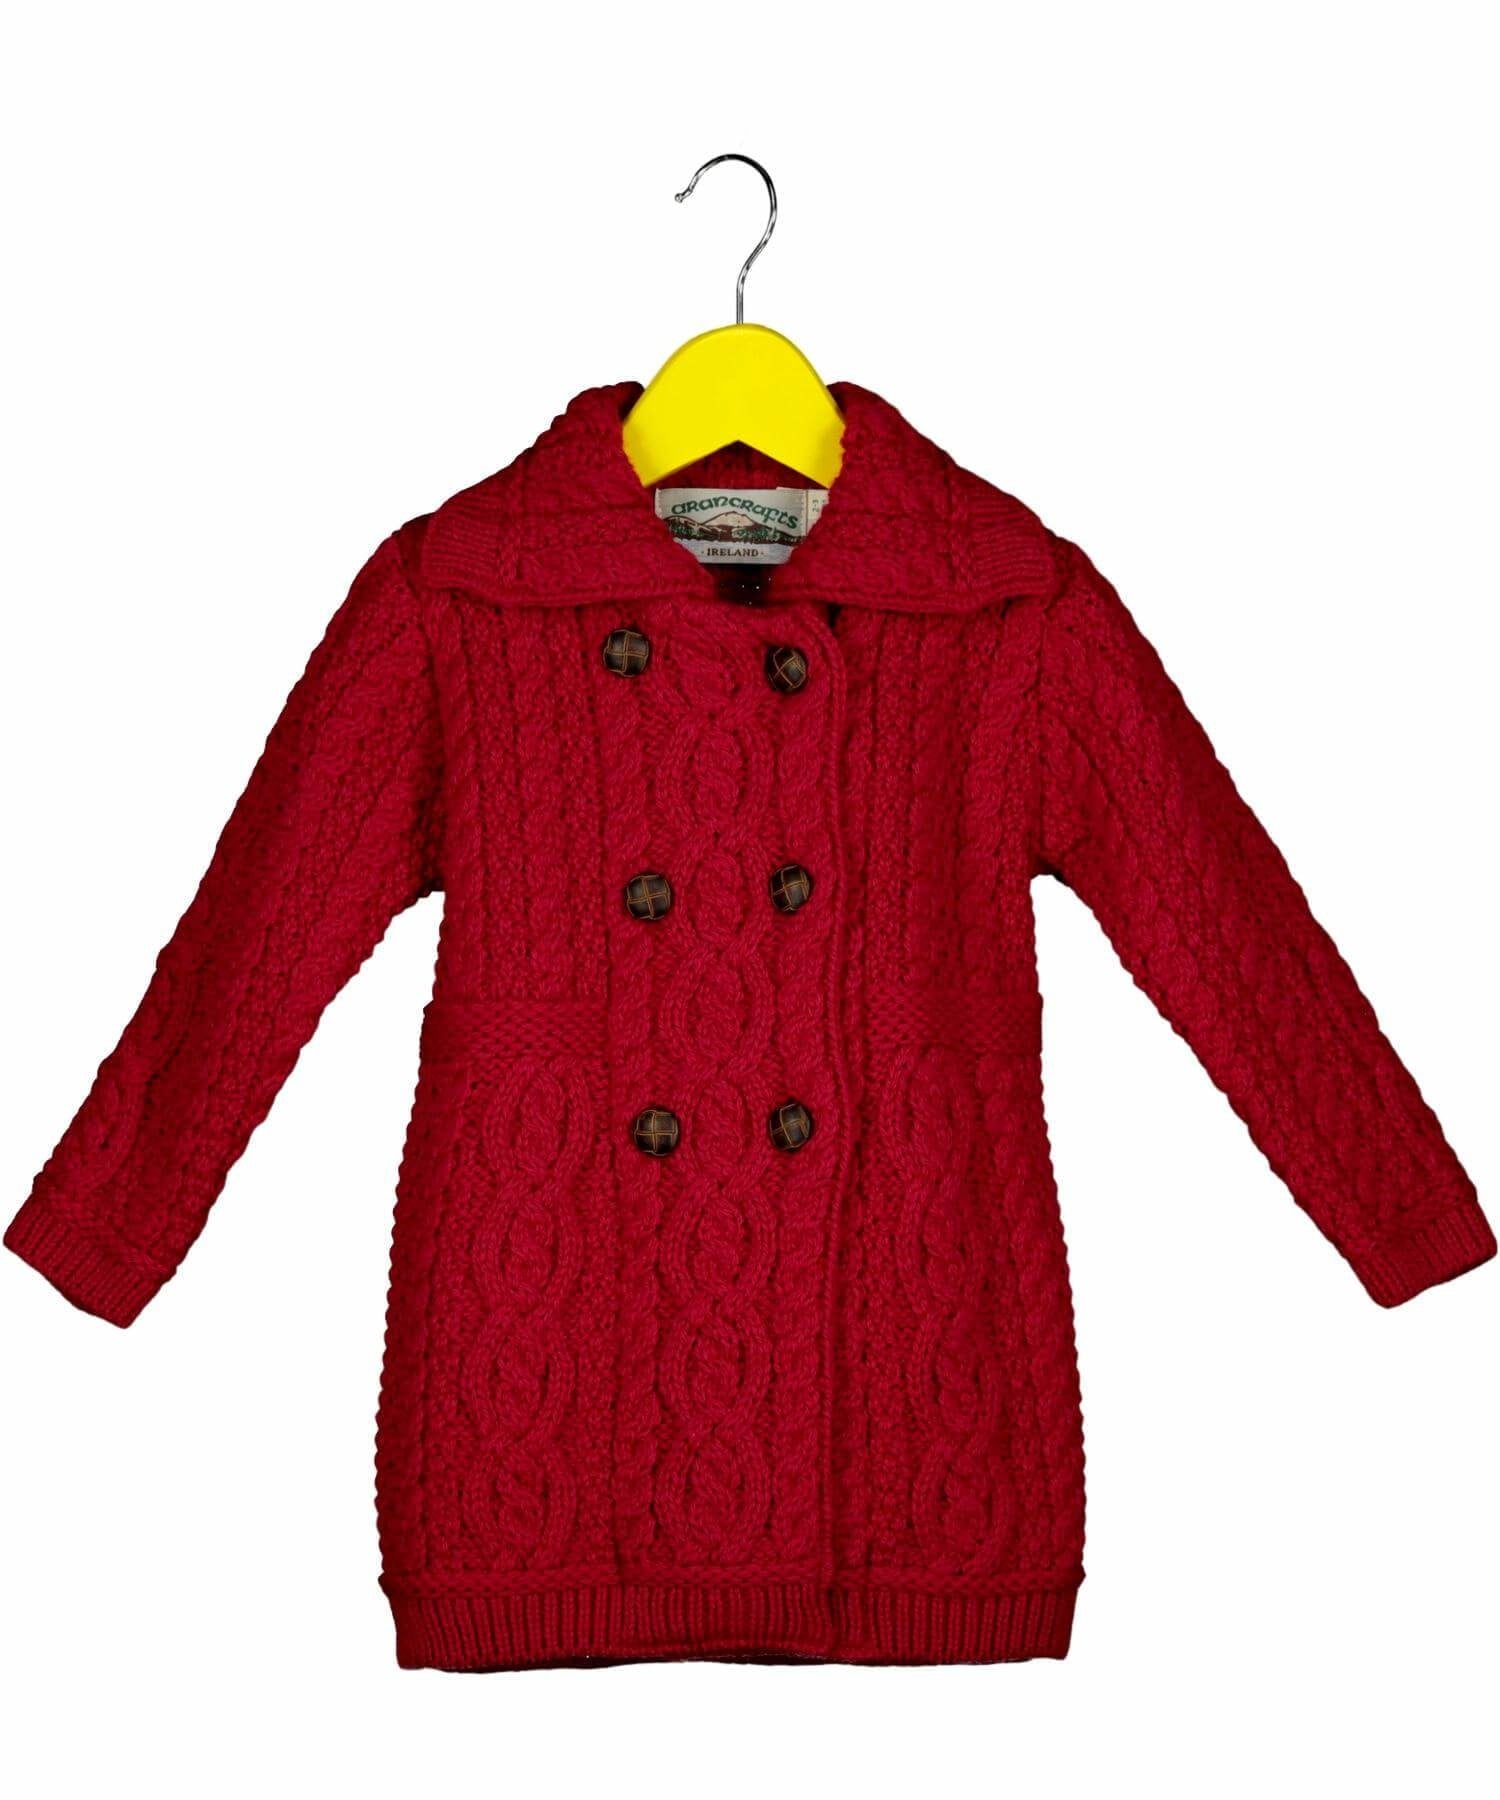 Kids Double Breasted Coat - Garnet - [Aran Crafts] - Childrens Sweaters & Cardigans - Irish Gifts